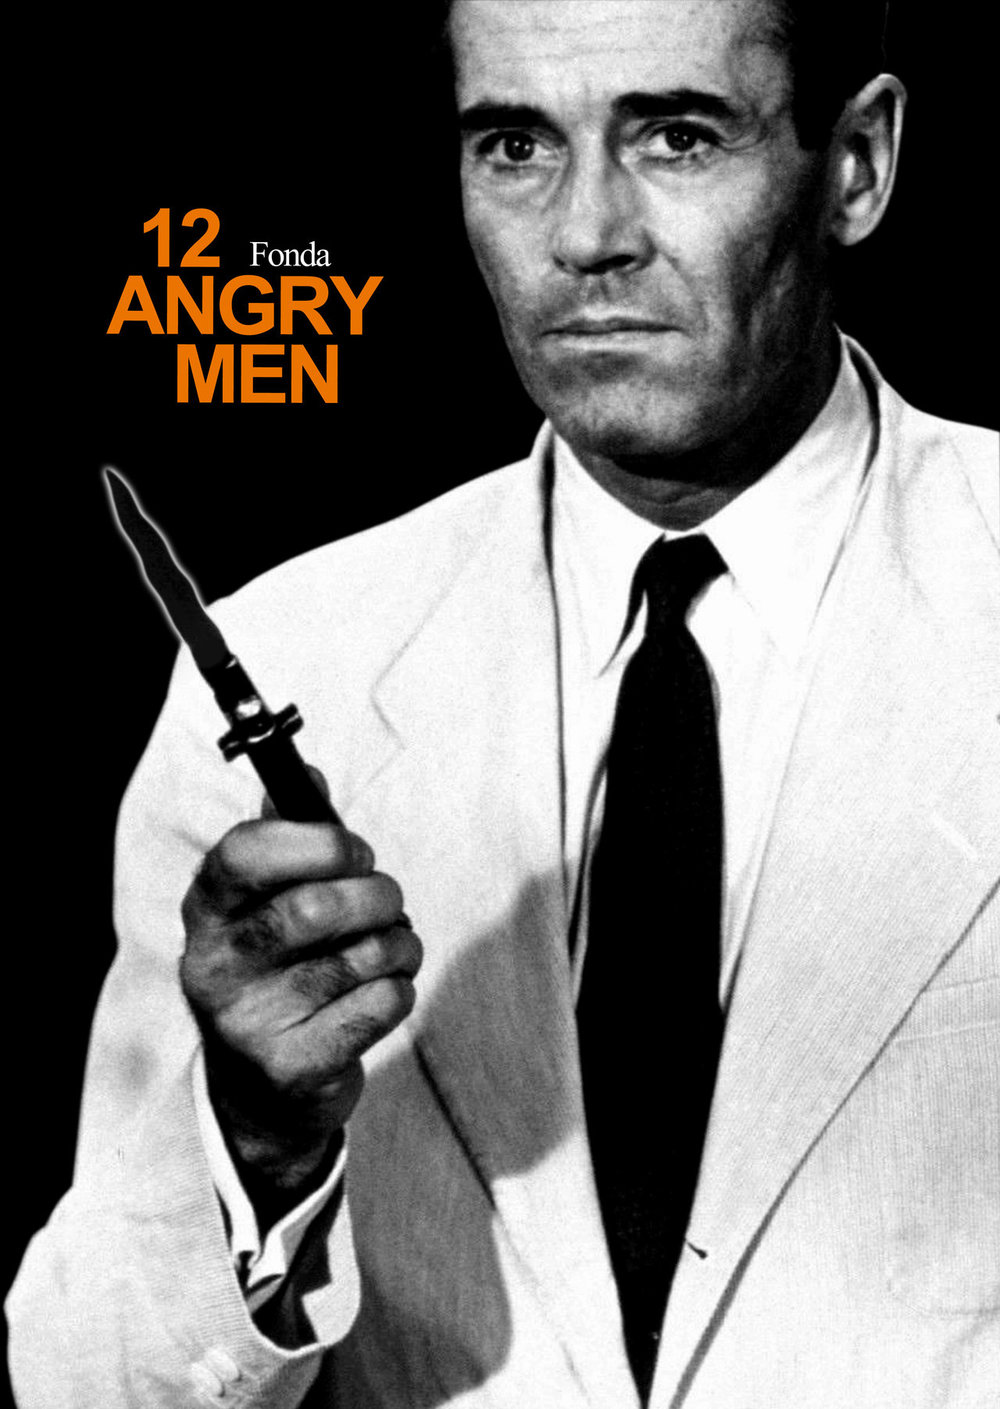 12 angry men 12 Created date: 3/29/2007 10:16:27 am.